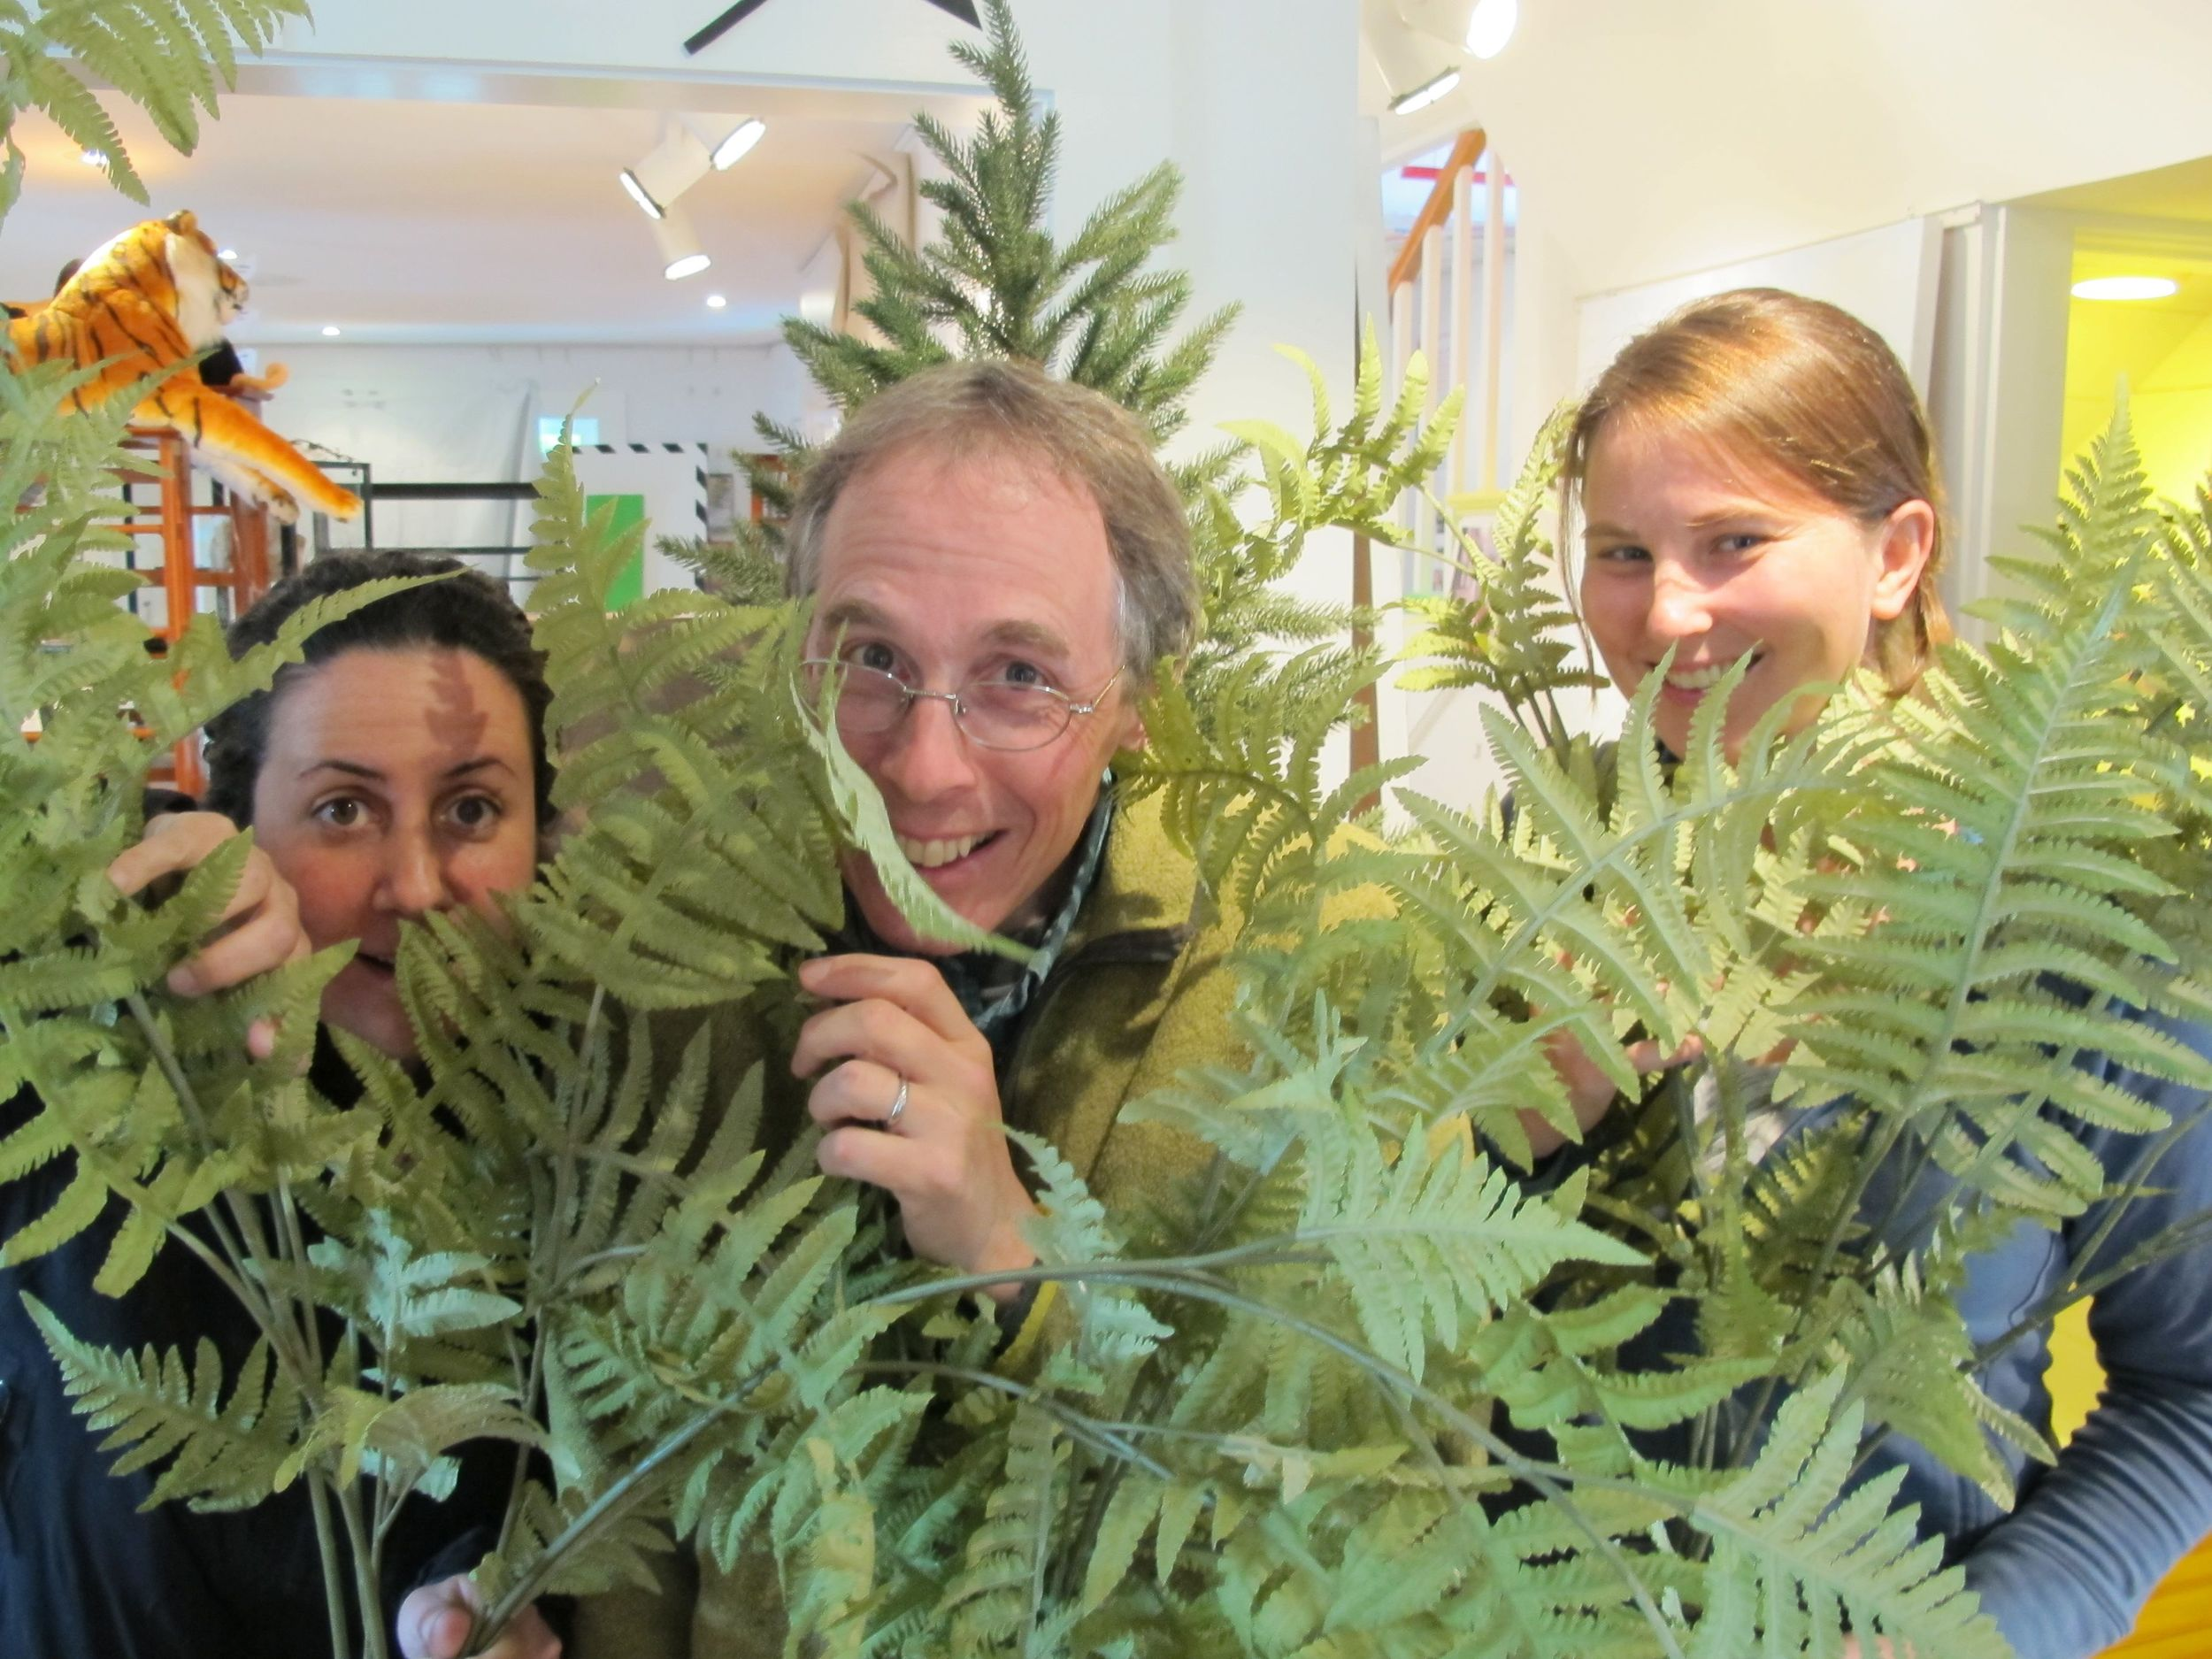 We'll be taking visitors through a unique indoor exploration of part of Acadia National Park, complete with faux flora. Here Notebook friend Peggy Knox (left) and biologist Caitlin McDonough MacKenzie—a Pd.D. student studying the effects of climate change on plants in Acadia—join me in checking out ferns.